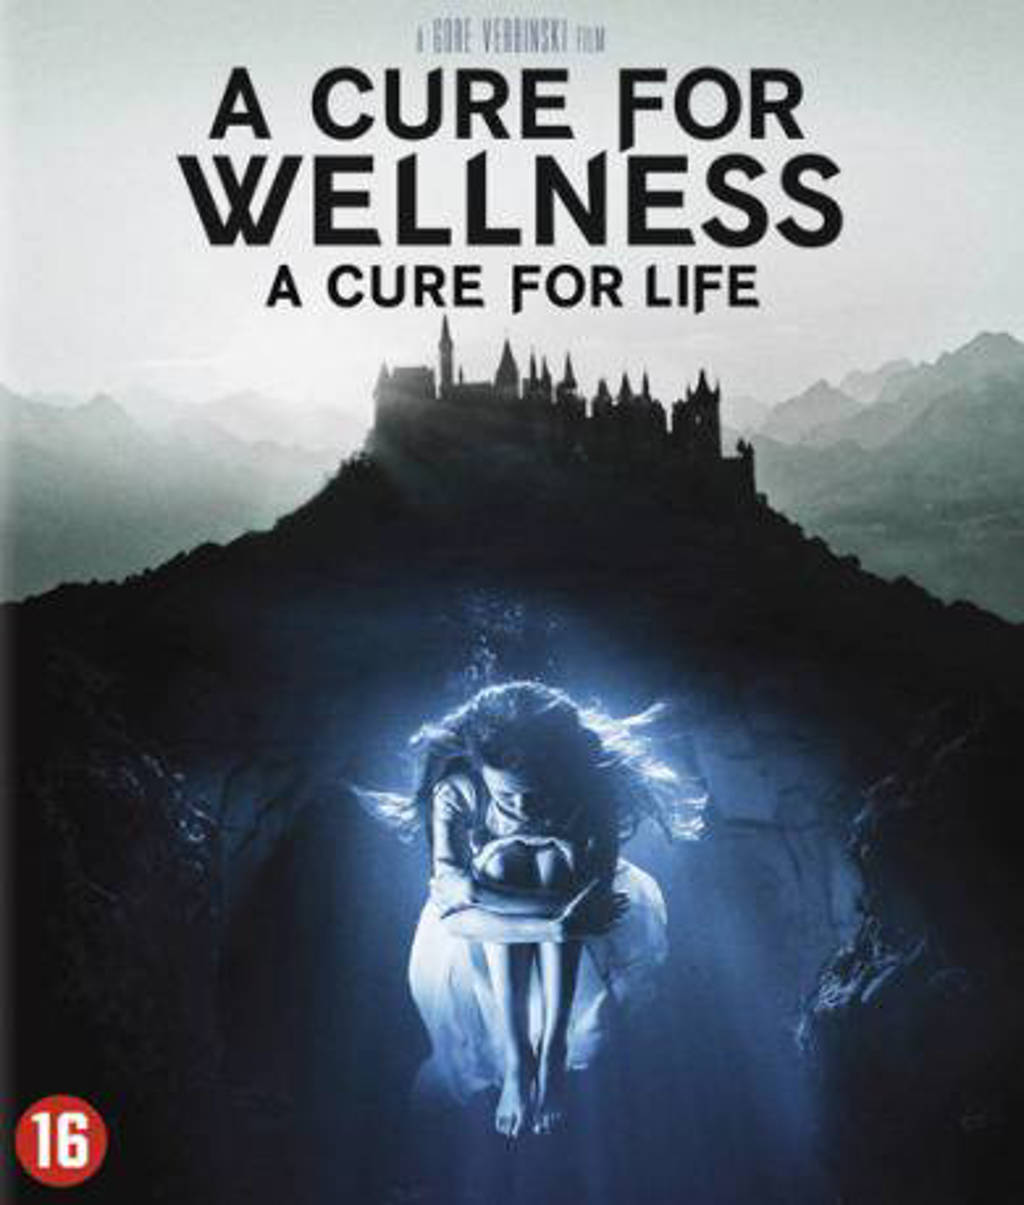 Cure for wellness (Blu-ray)